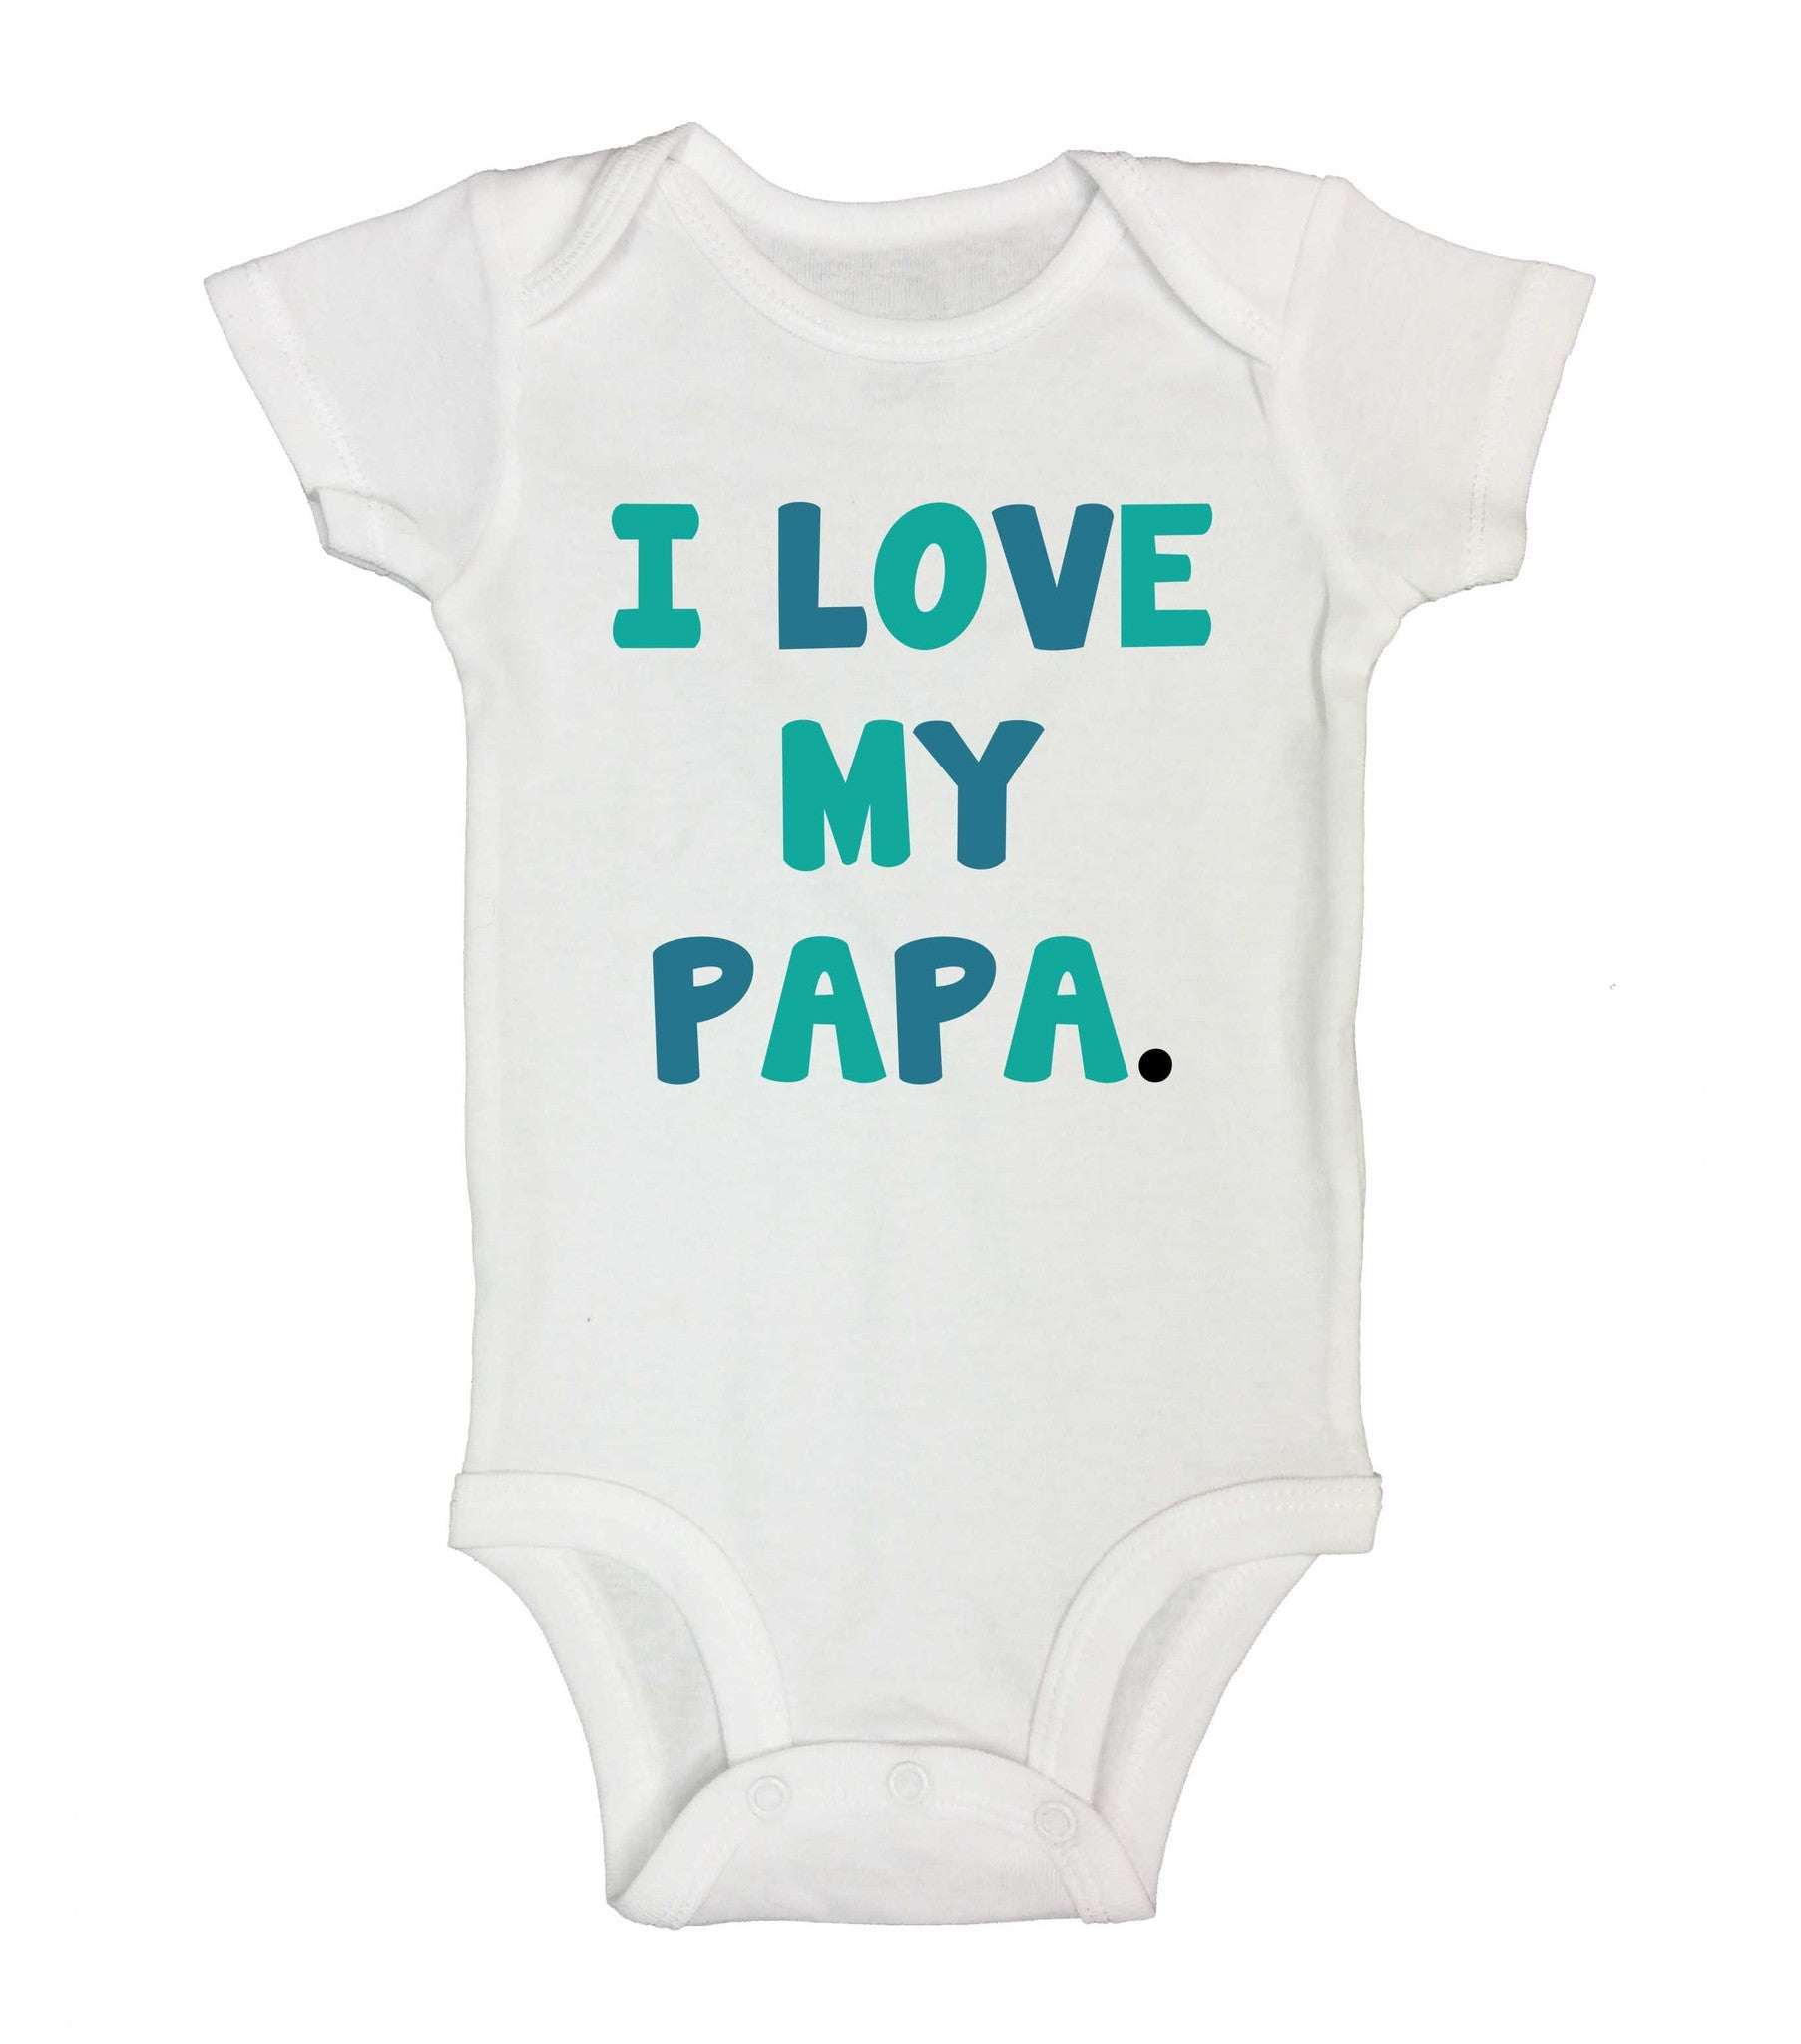 I Love My Papa. Funny Kids Onesie - B243 - Funny Shirts Tank Tops Burnouts and Triblends  - 2